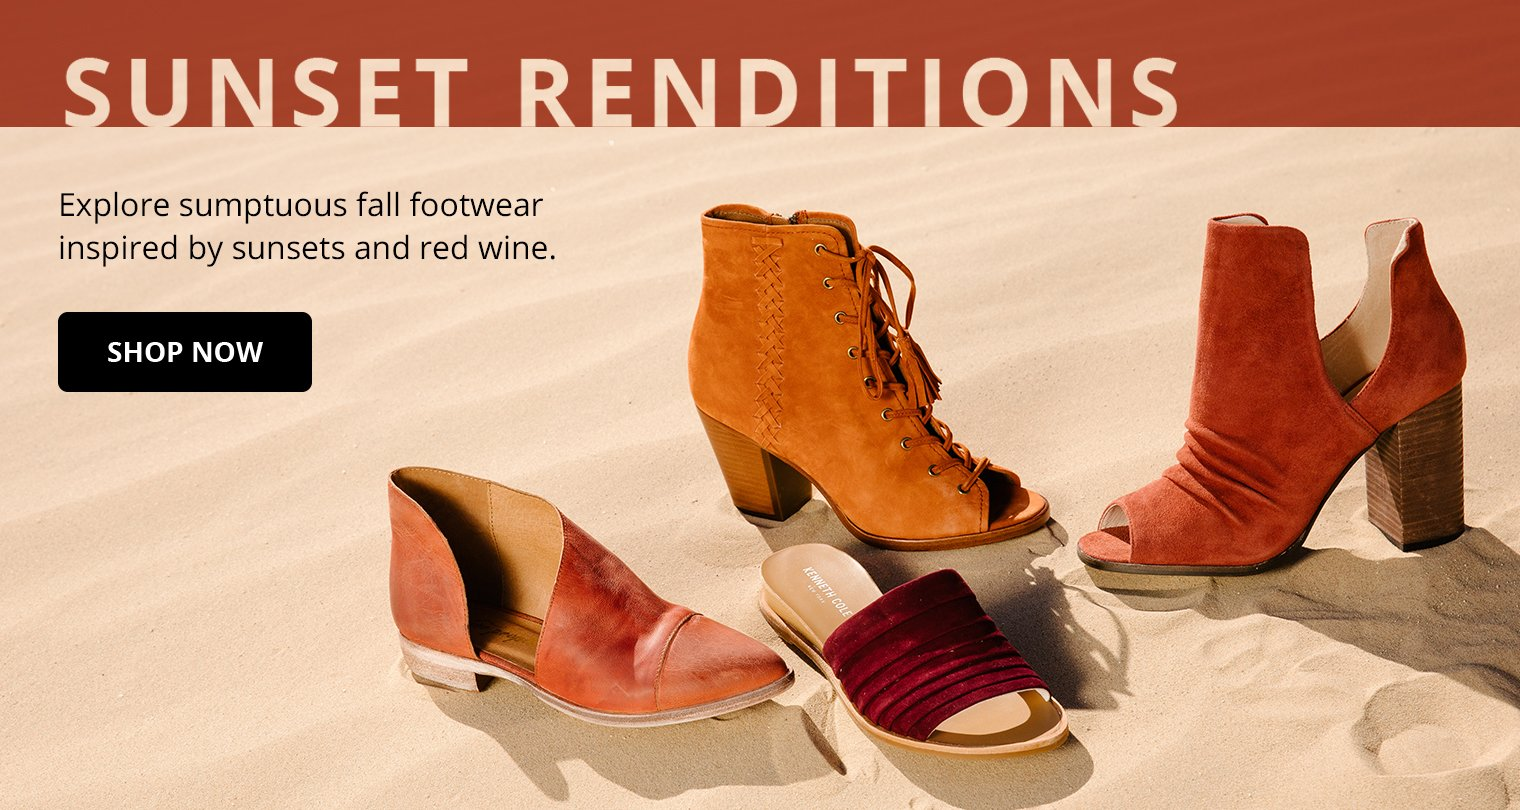 Sunset Renditions. Explore sumptuous fall footwear inspired by sunsets and red wine. Shop Now.